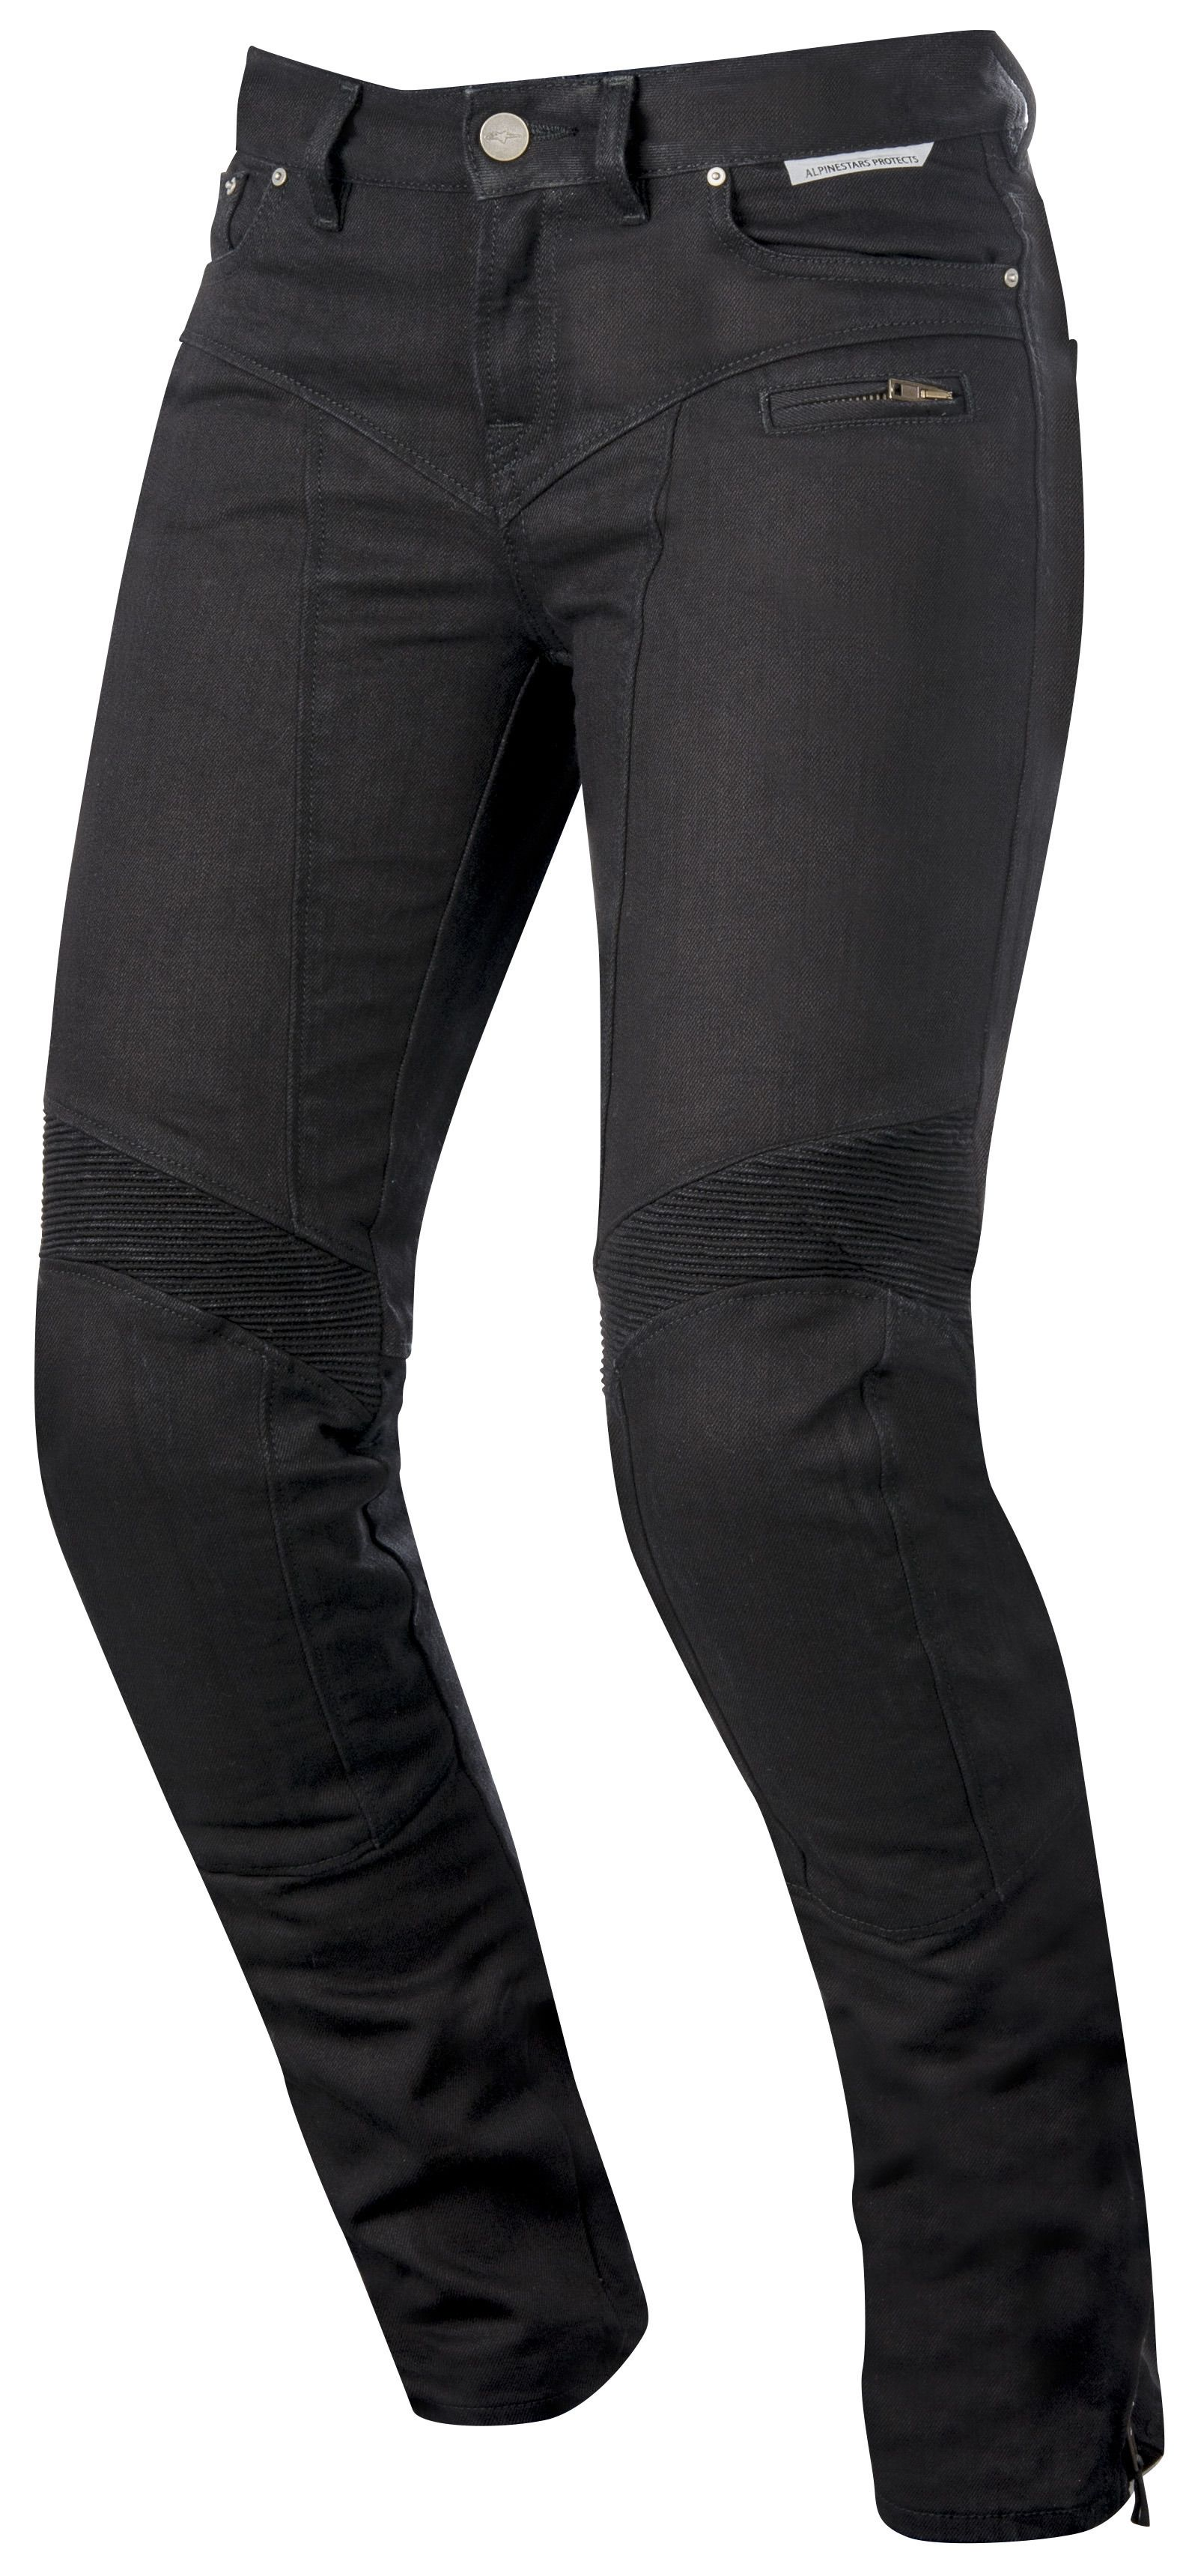 Alpinestars Riley Riding Women's Jeans - RevZilla